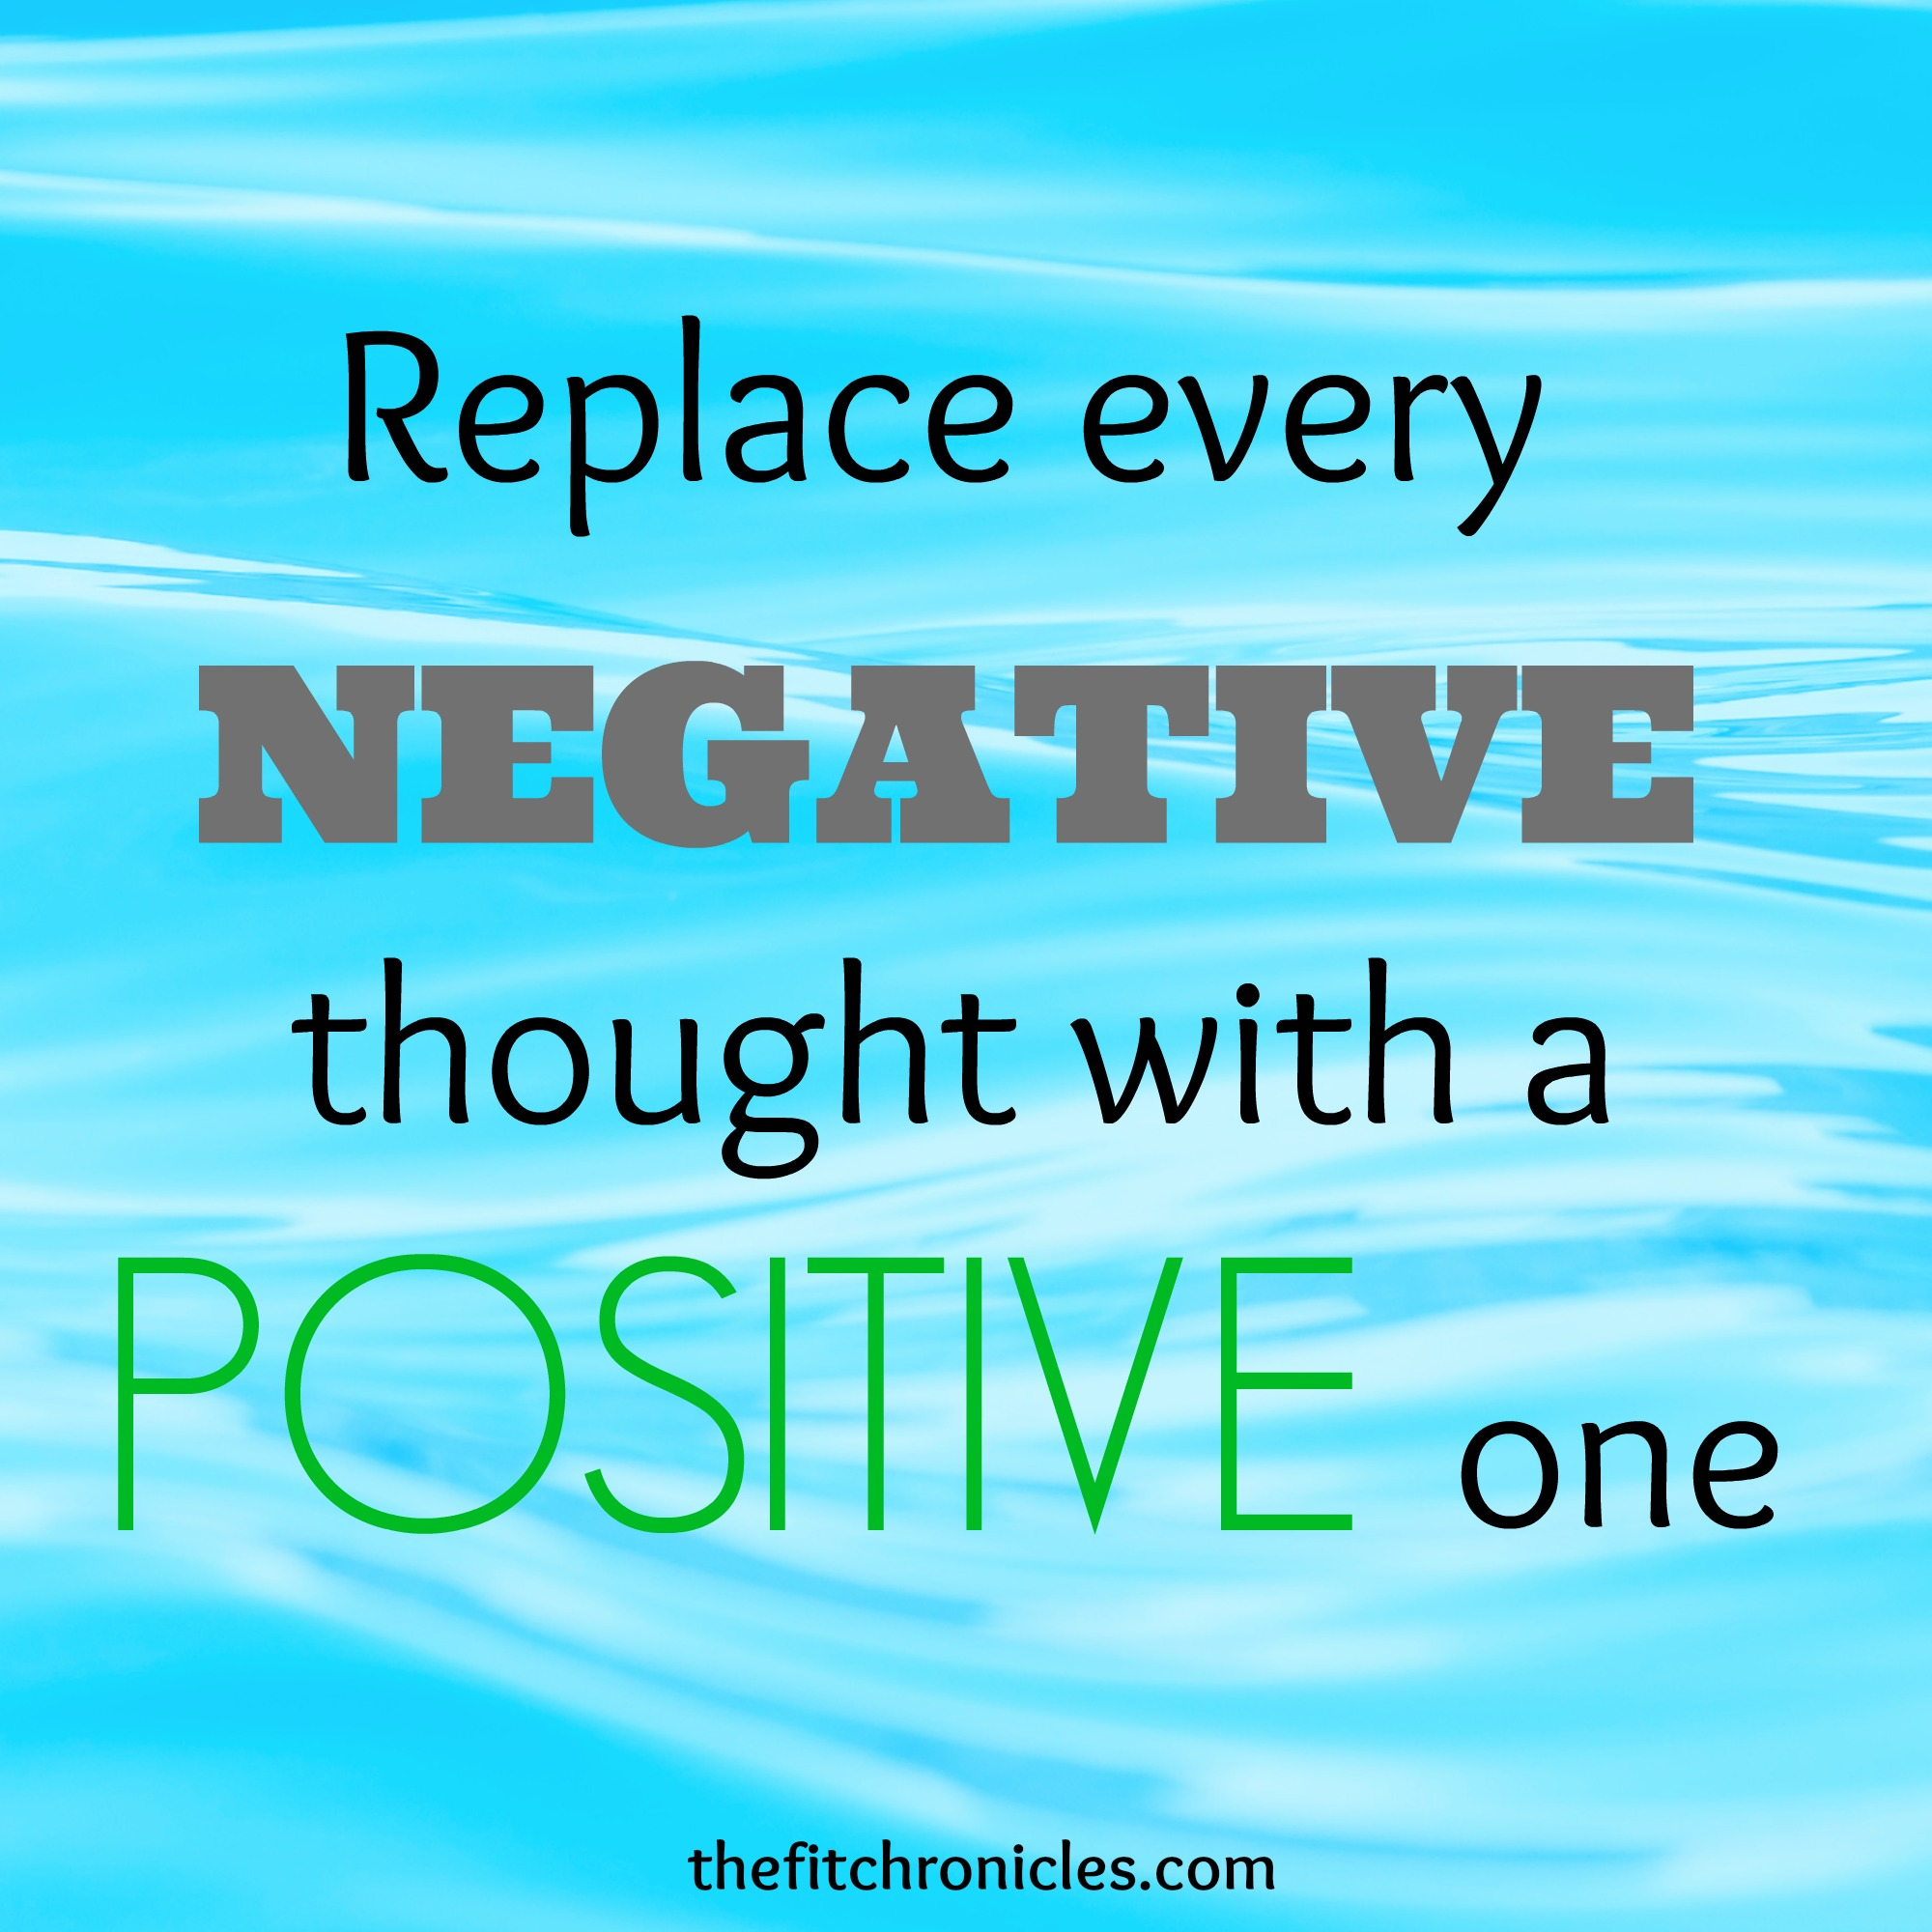 Quotes About Positive Thinking (159 Quotes